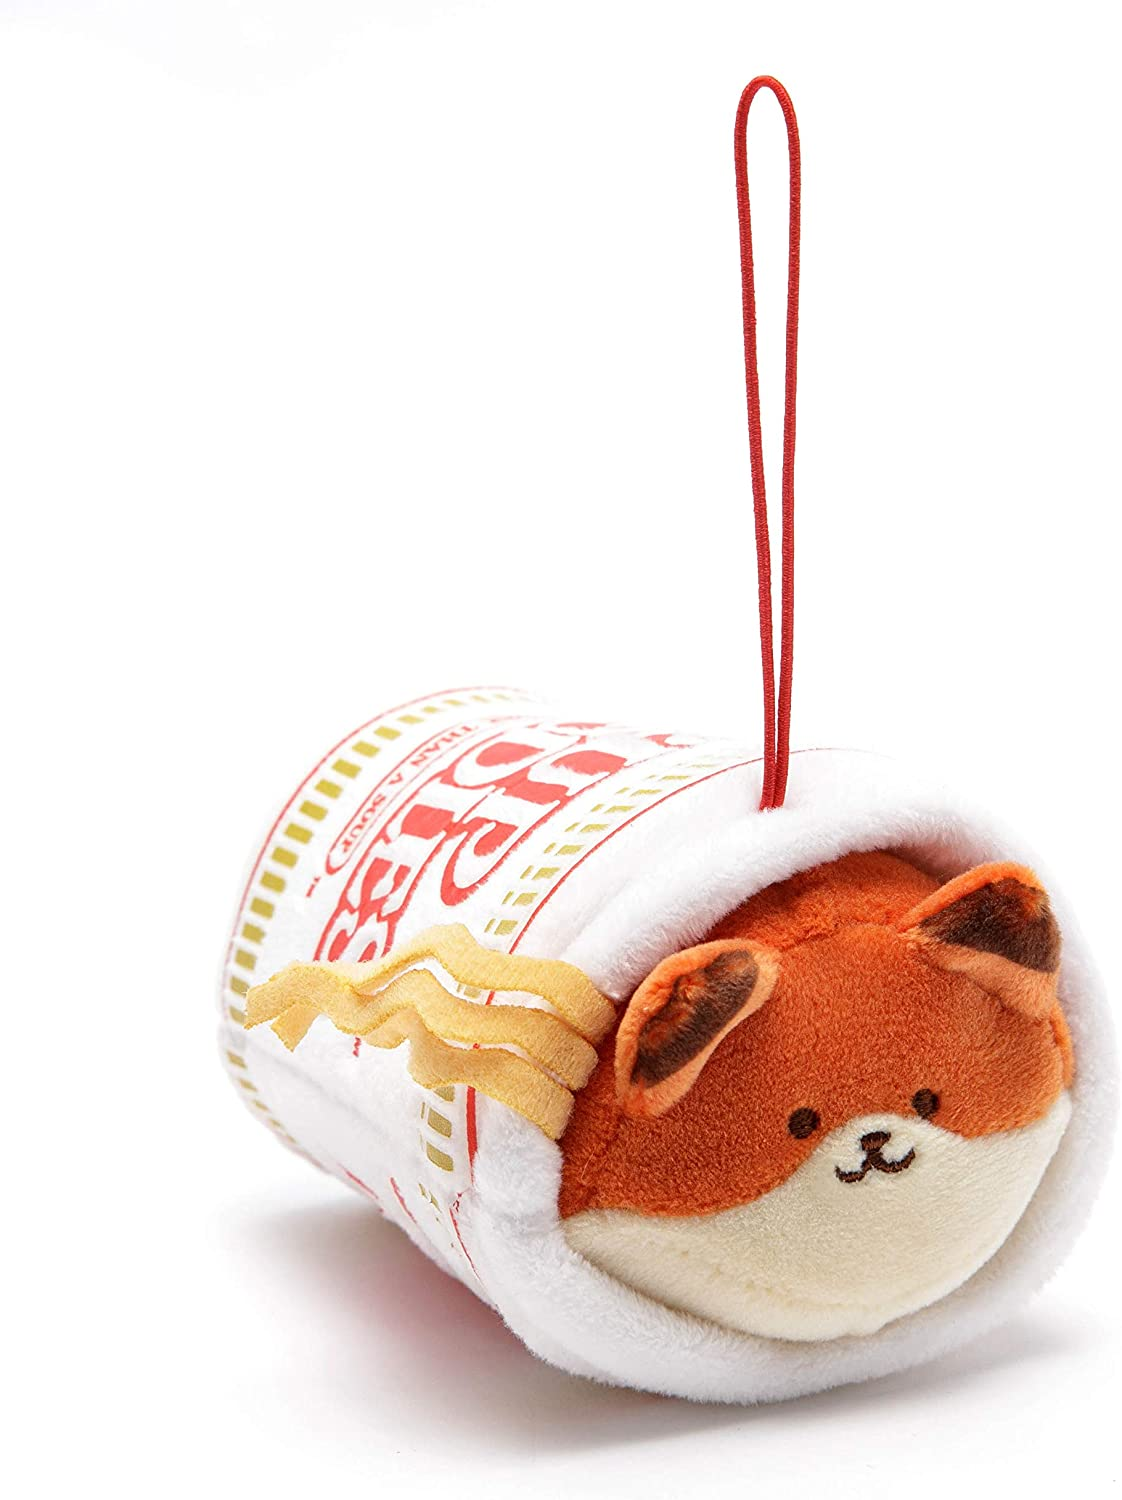 Anirollz Coosy x Nissin Cup Noodles 3.5